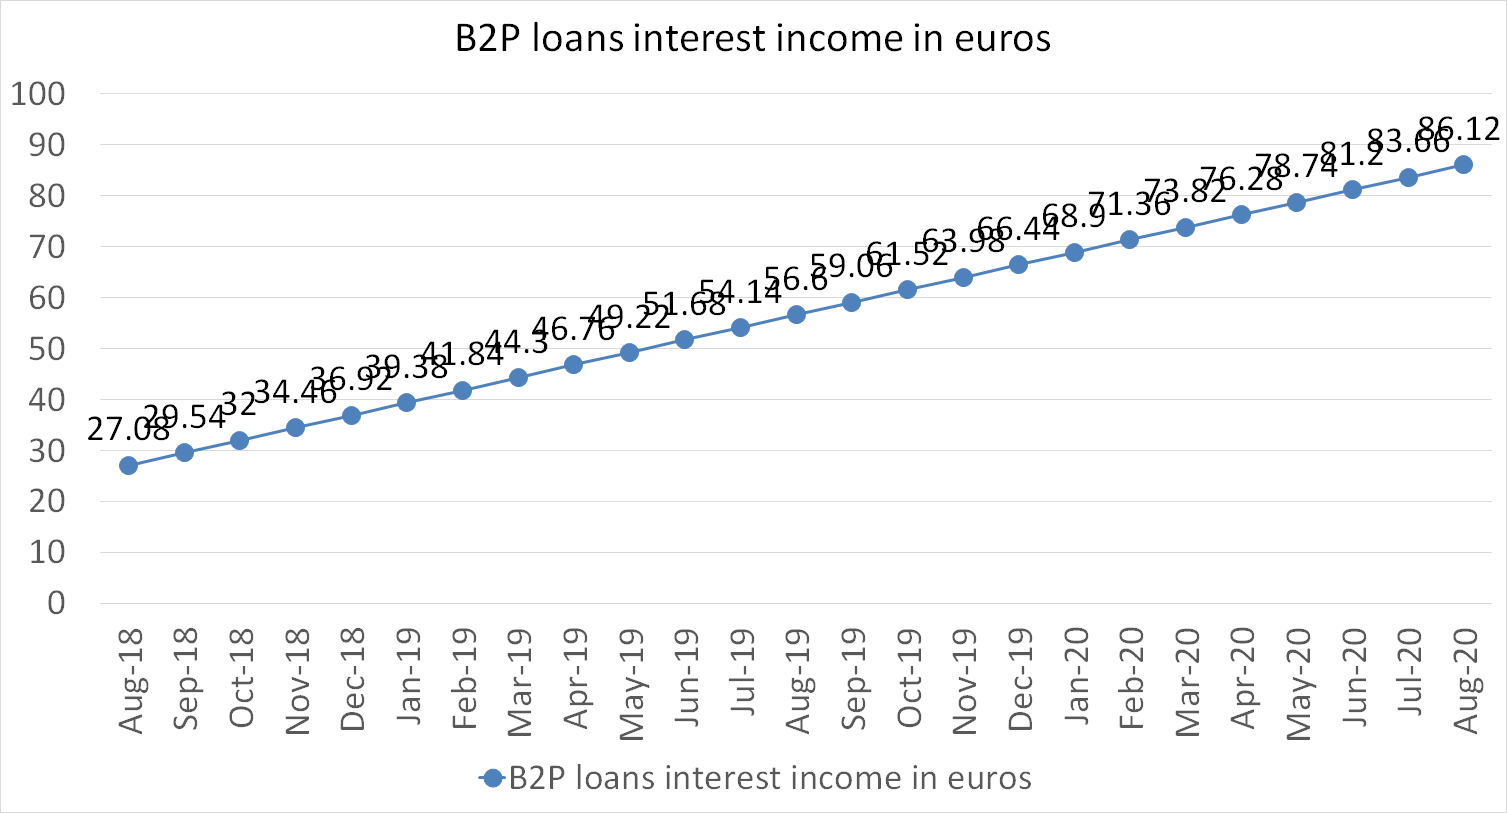 B2P loans interest income in euros august 2020